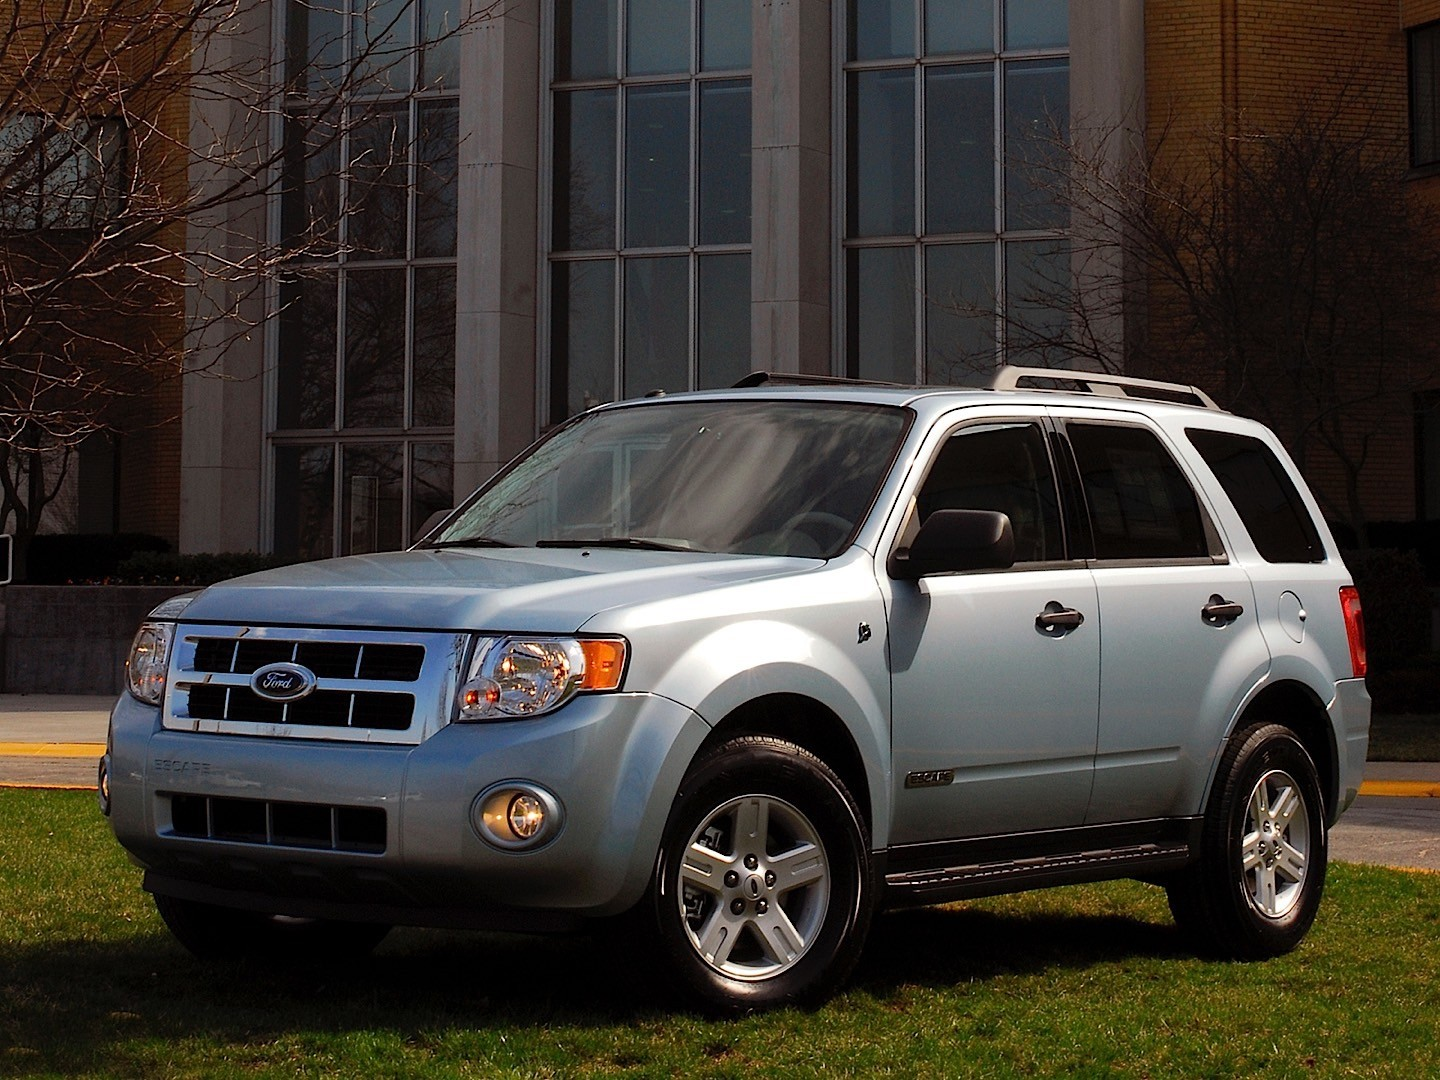 Fast Awd Cars >> FORD Escape - 2008, 2009, 2010, 2011 - autoevolution